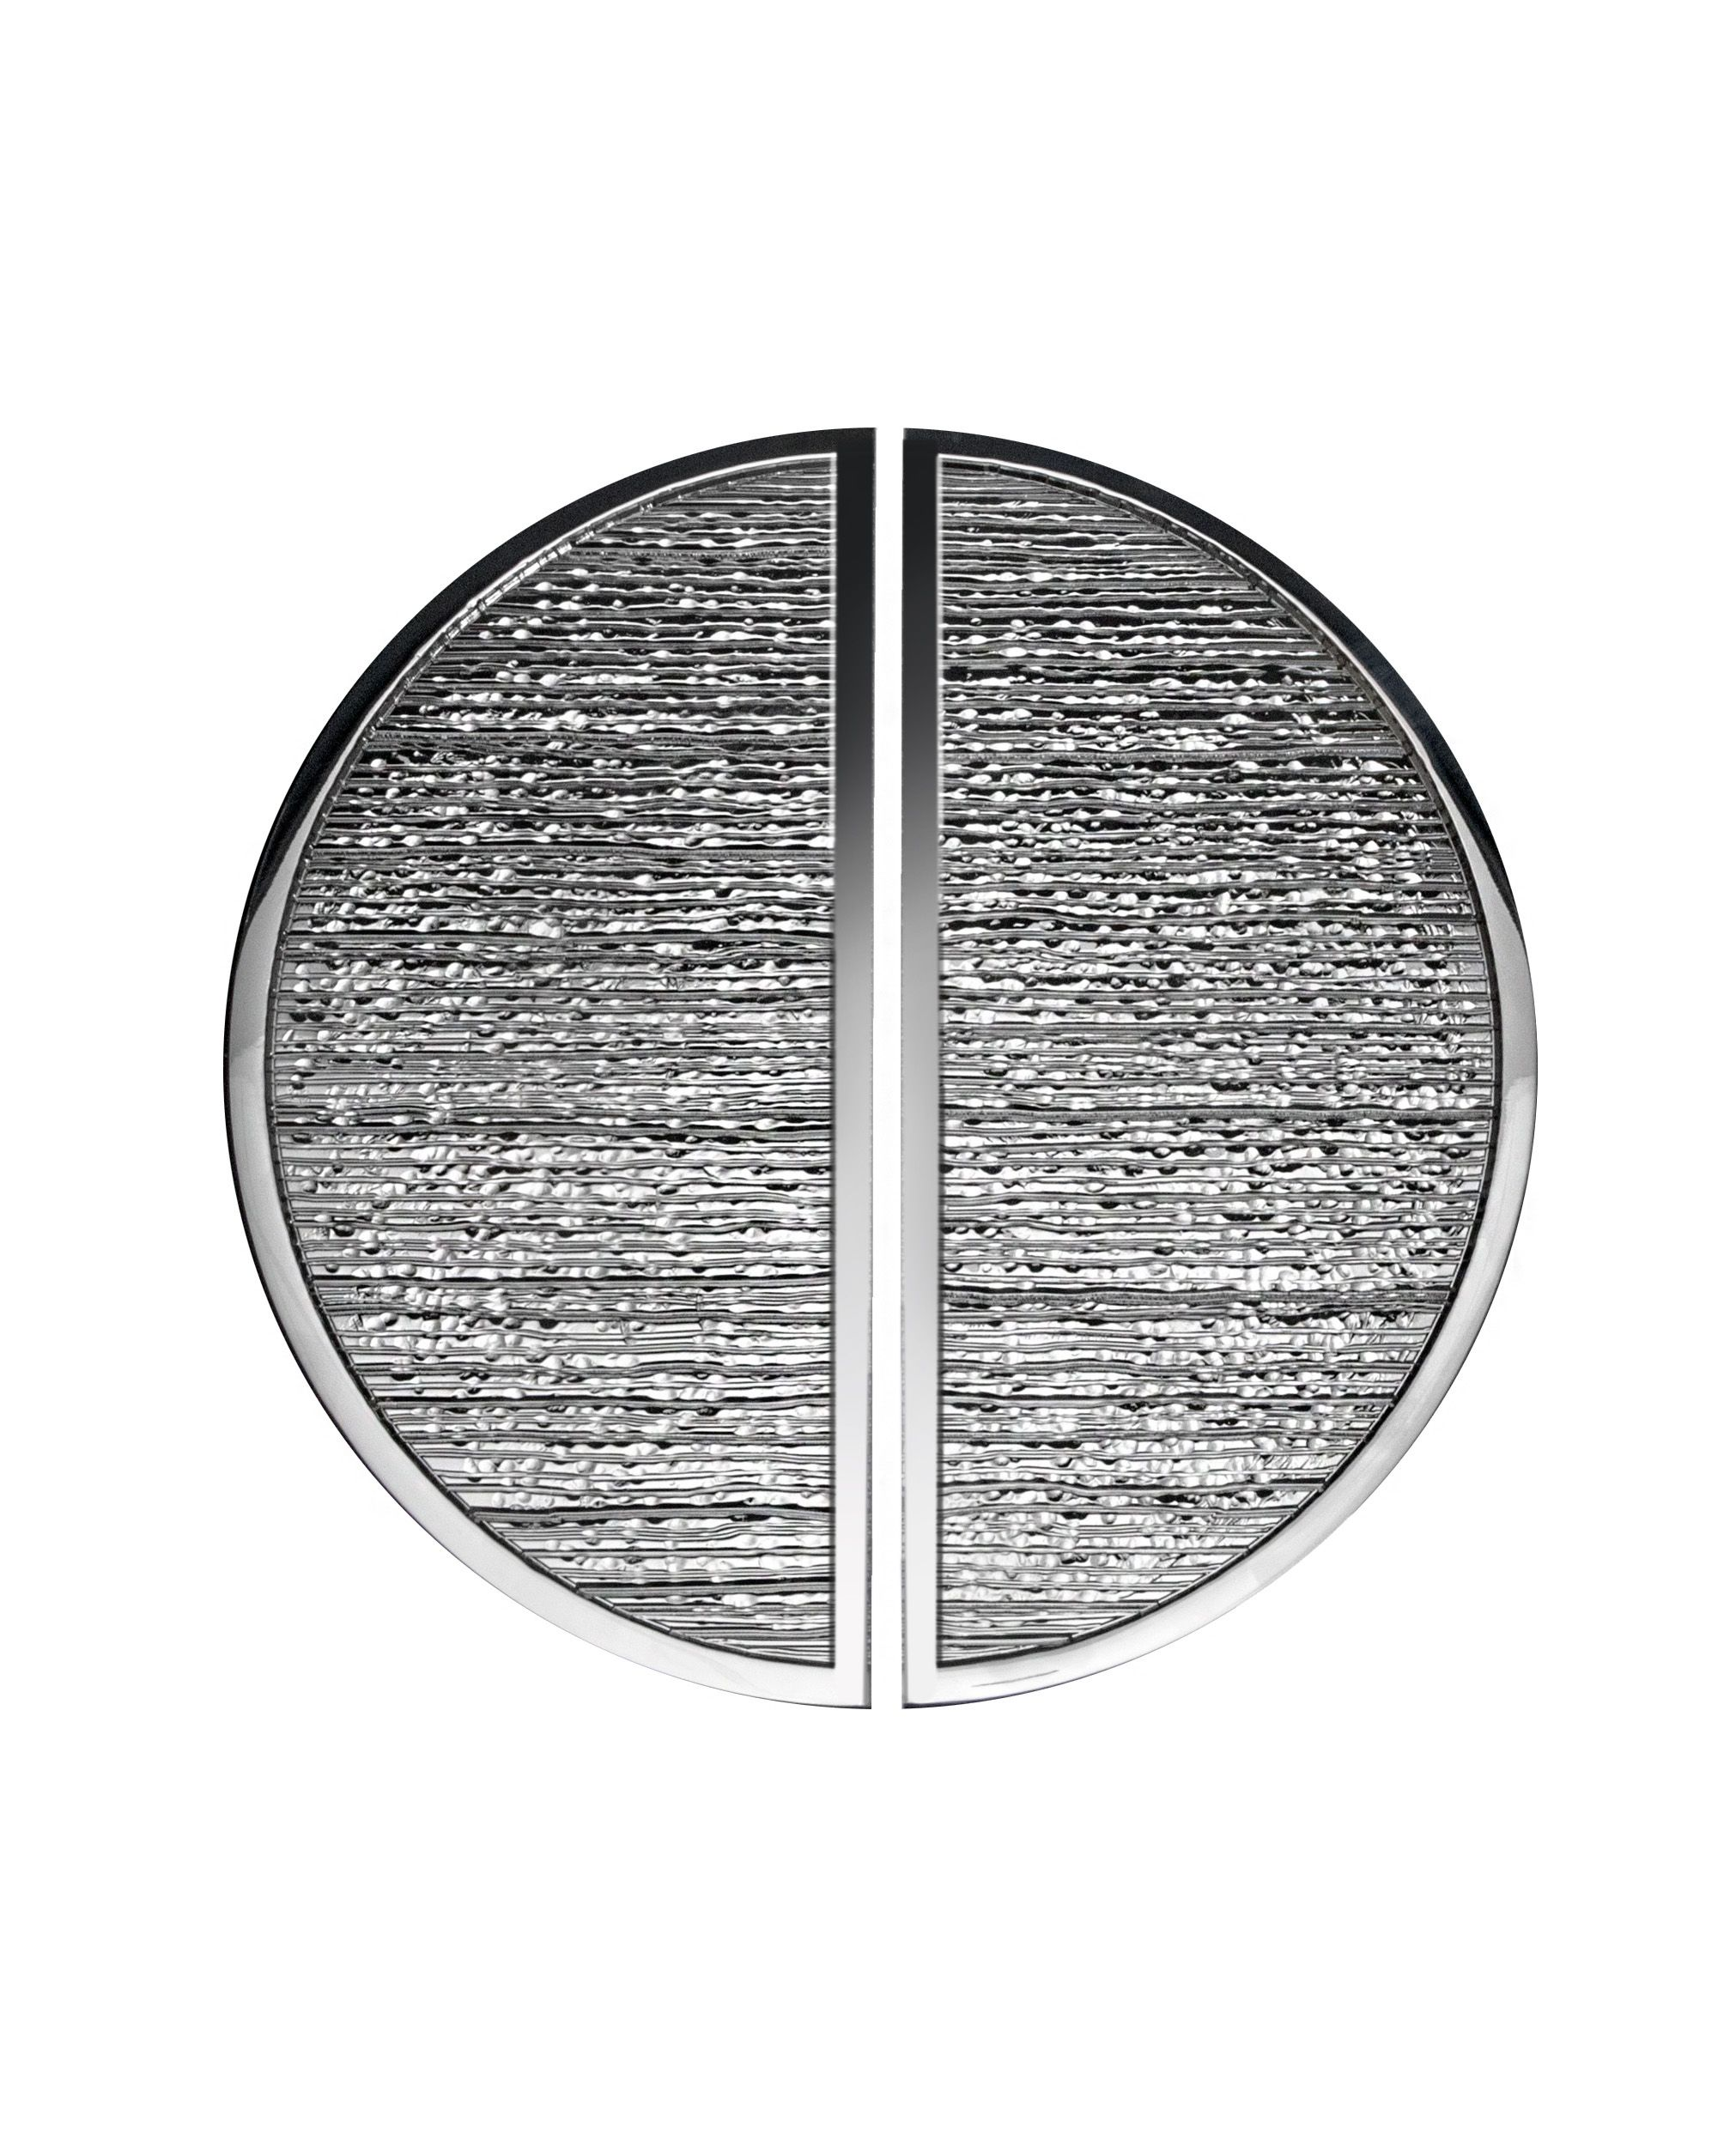 Brooks 2 Door Pull   3/8u201d Solid Half Circle (Moon) Grip With 2 3/4u201d Face  With Reeded, Hammered Center, 1/4u201d Smooth Border And Fixed Smooth Straight  Round ...